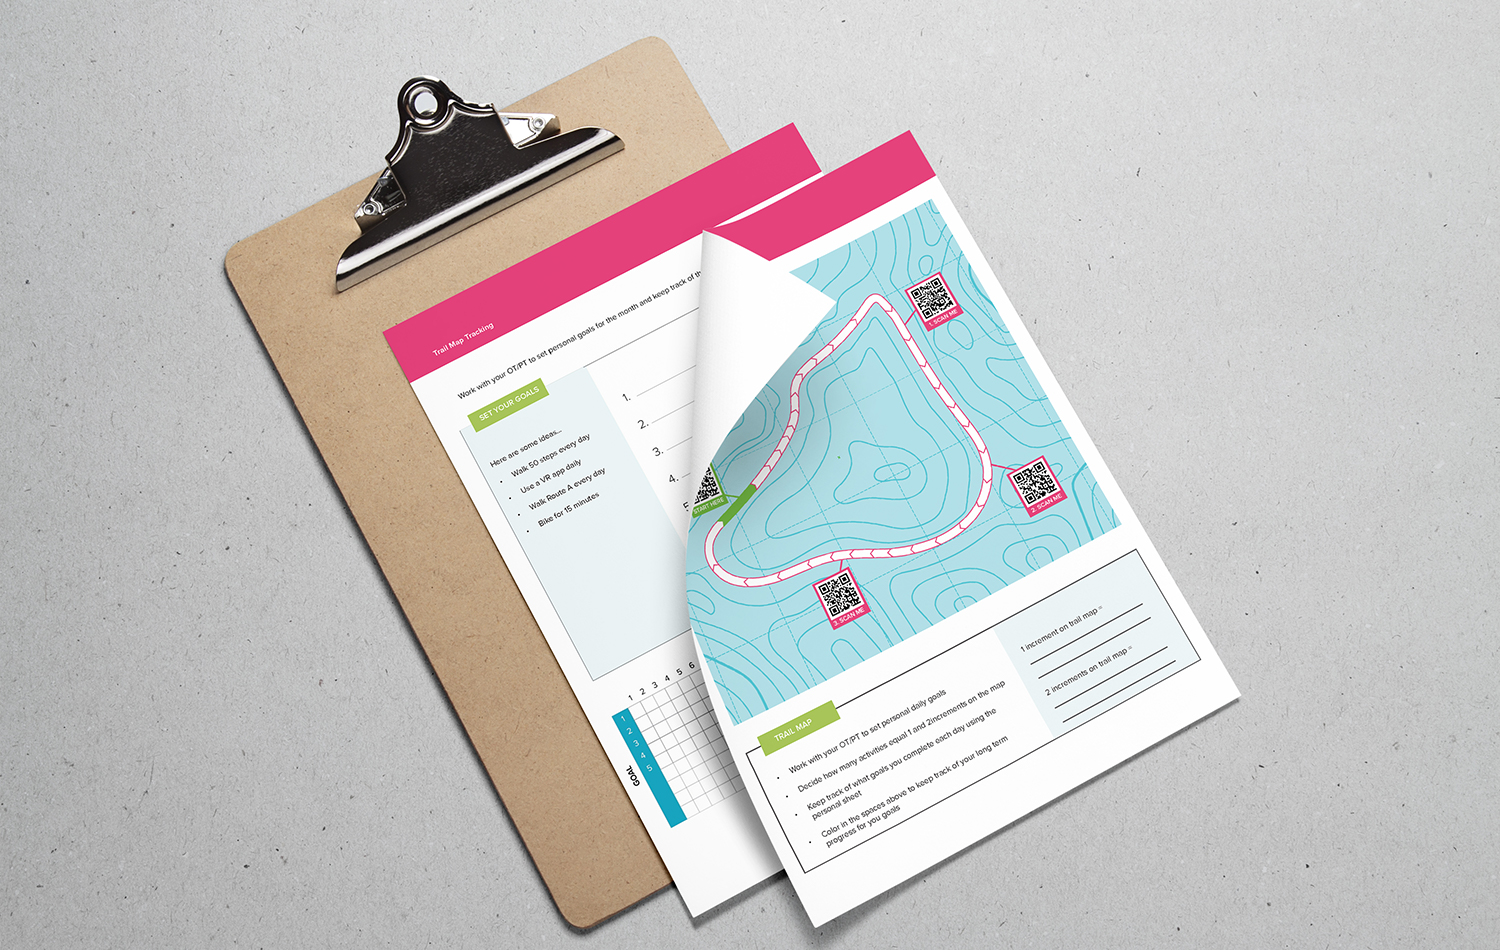 Clipboard with the activity tracking documents